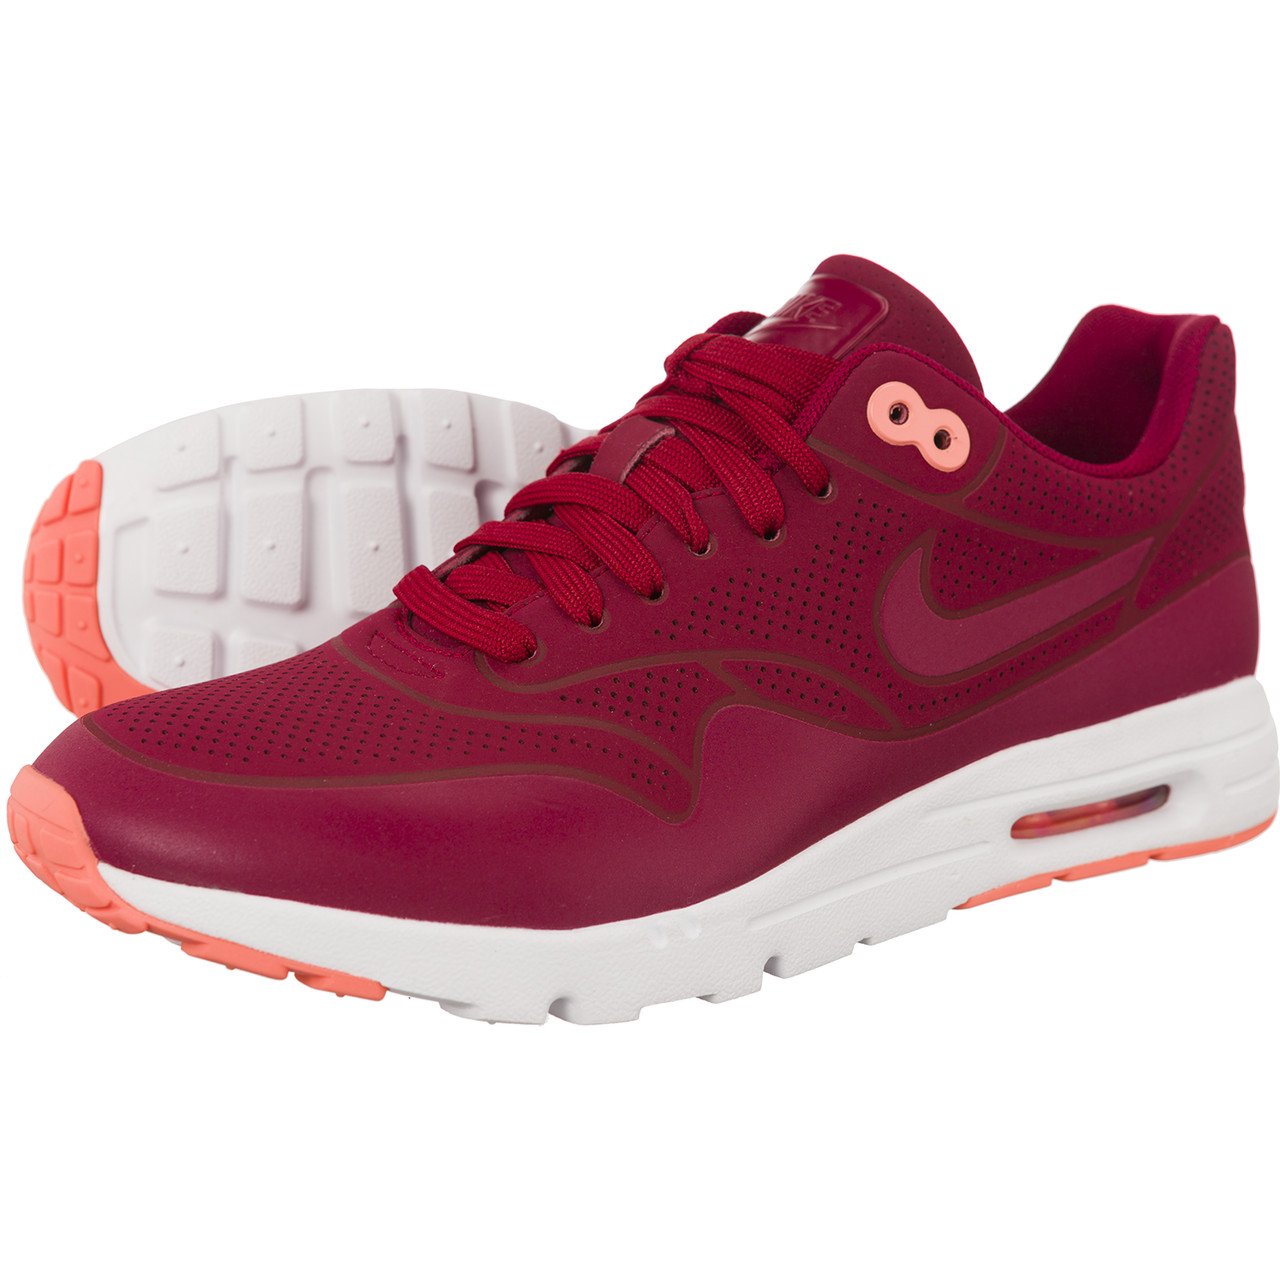 NIKE AIR MAX 1 ULTRA MOIRE NOBLE RED oryginalne